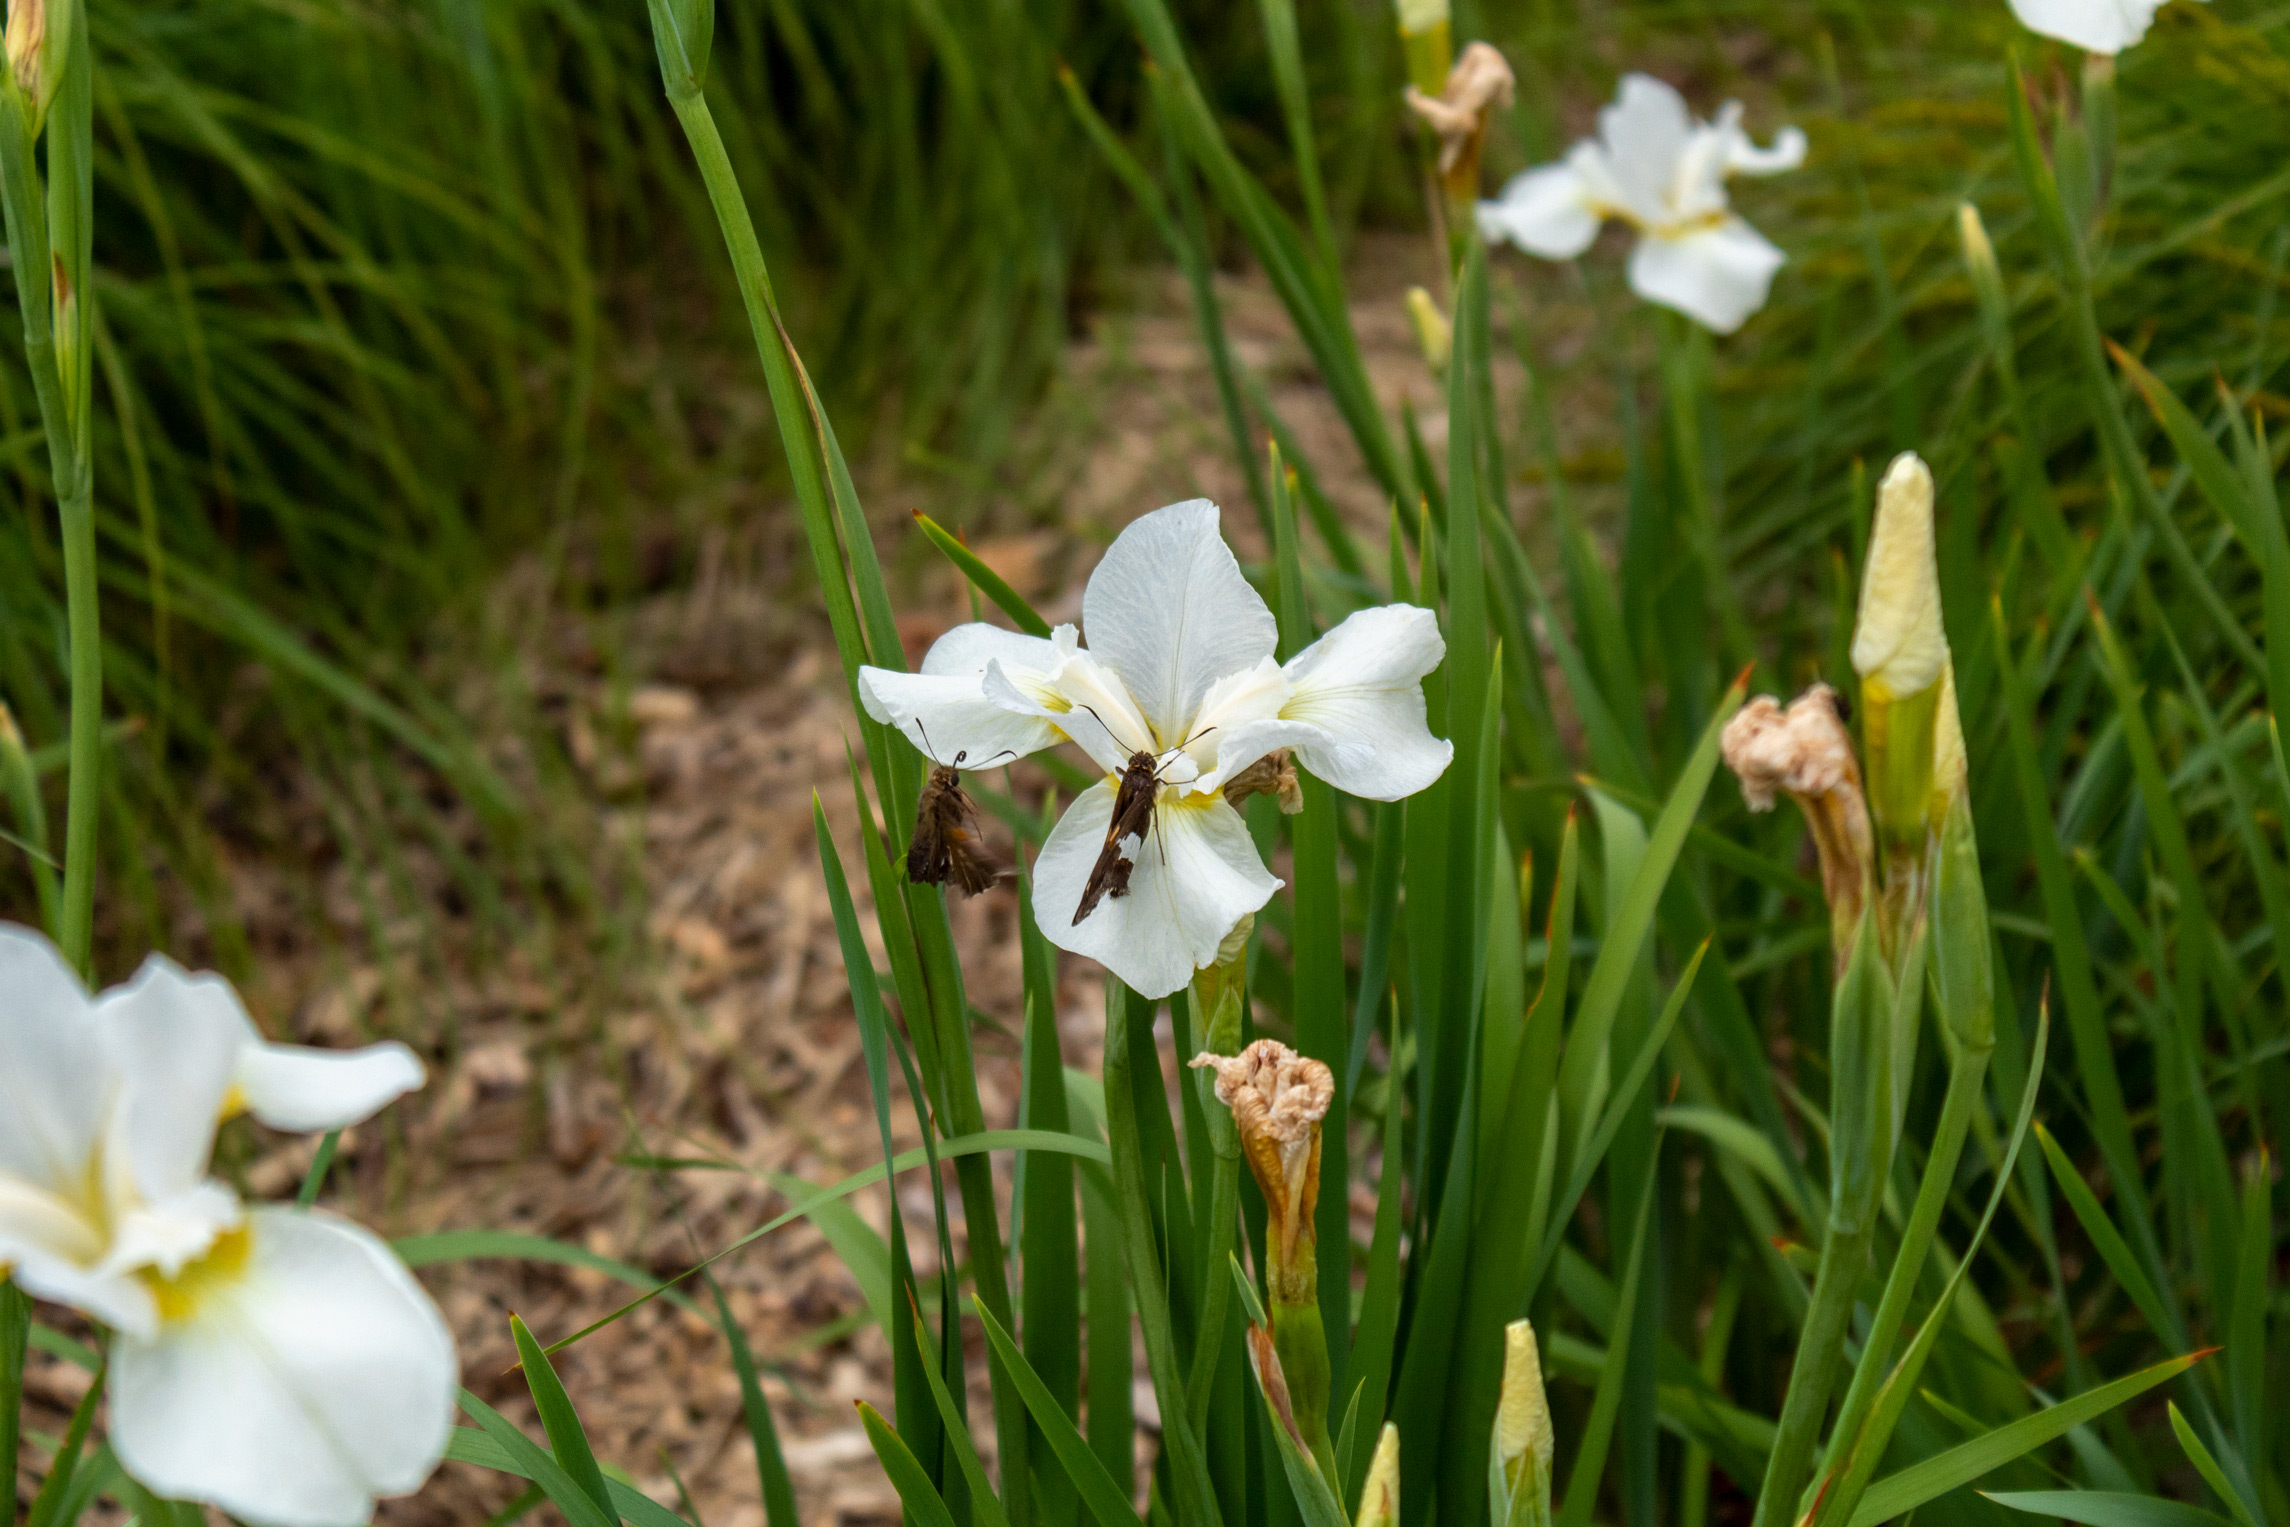 White iris with a moth resting on it and another moth flying nearby